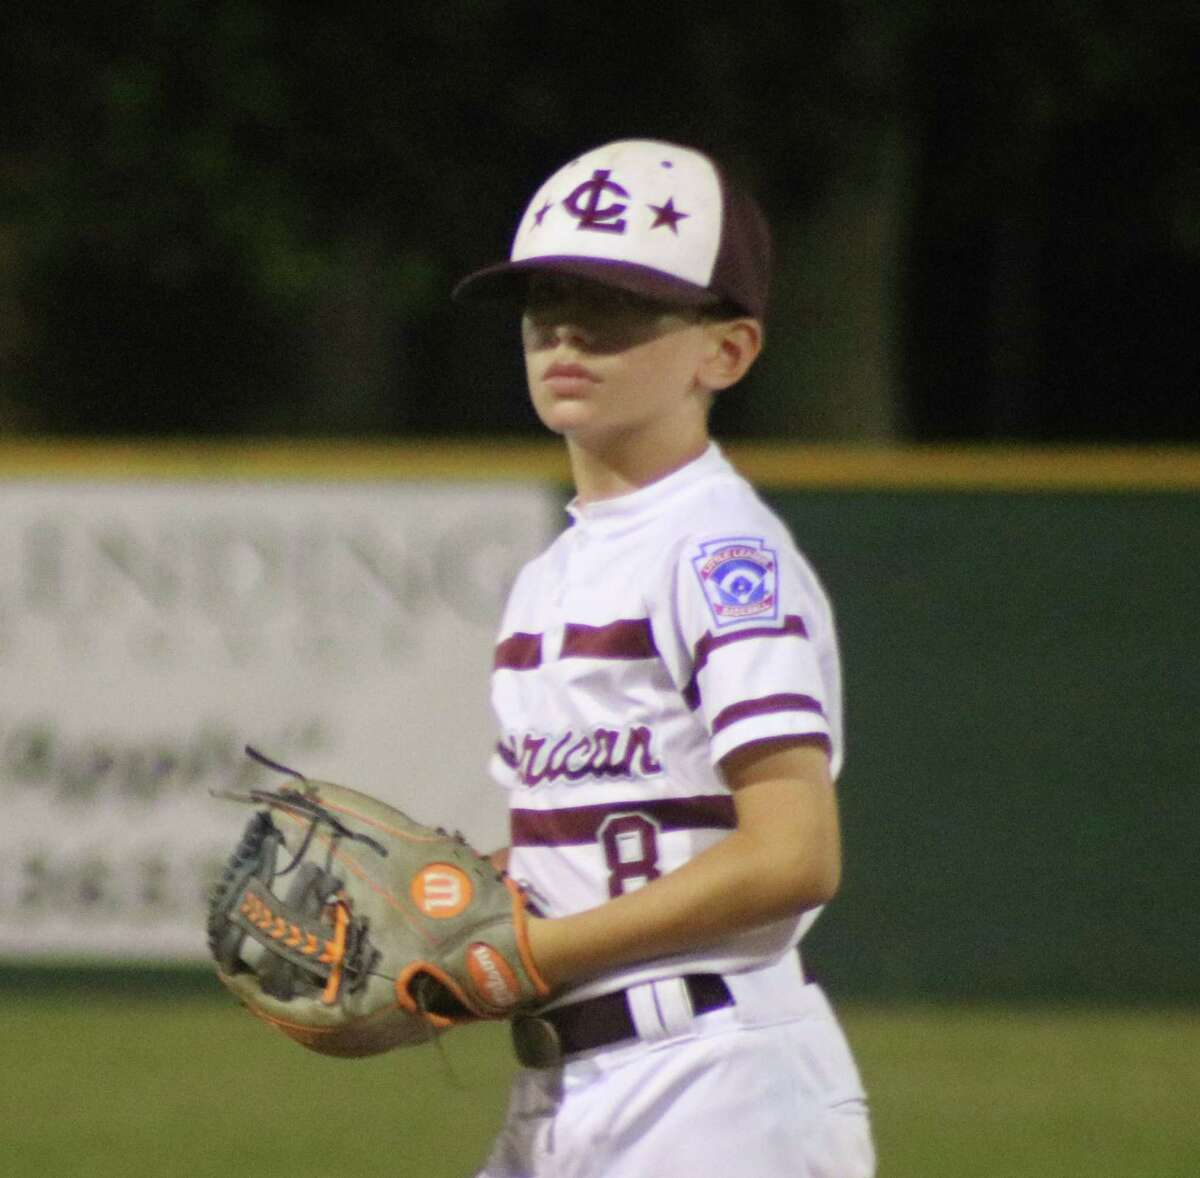 League City Little League 9U American All-Star Caleb Maldonado prepares to throw another pitch during the team's easy win over Texas City Tuesday night.